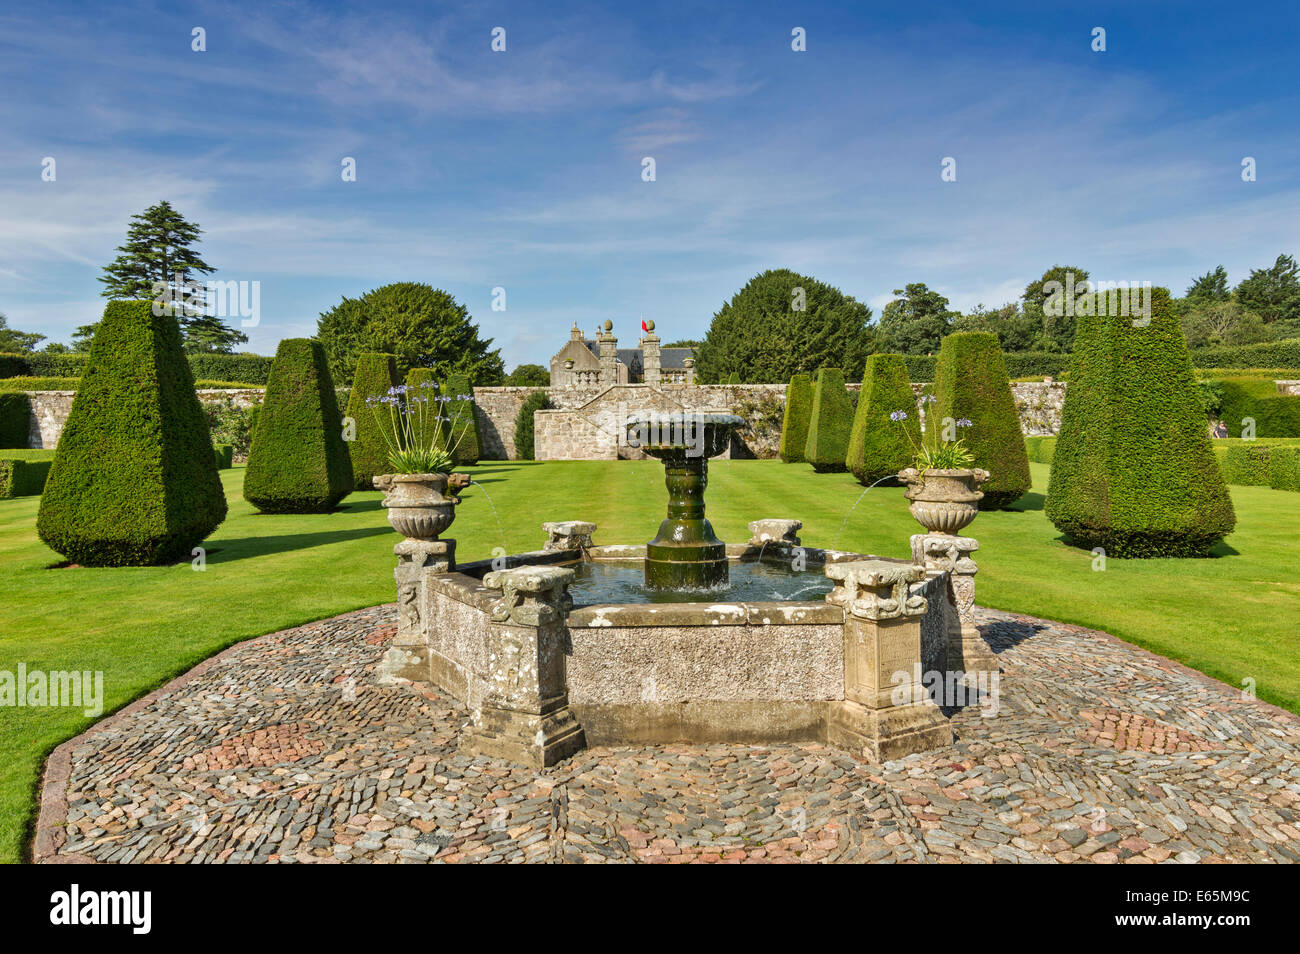 PITMEDDEN GARDENS ABERDEENSHIRE SCOTLAND WITH A LARGE FOUNTAIN AND THE TOPIARY AVENUE OF CLIPPED YEW BUSHES - Stock Image